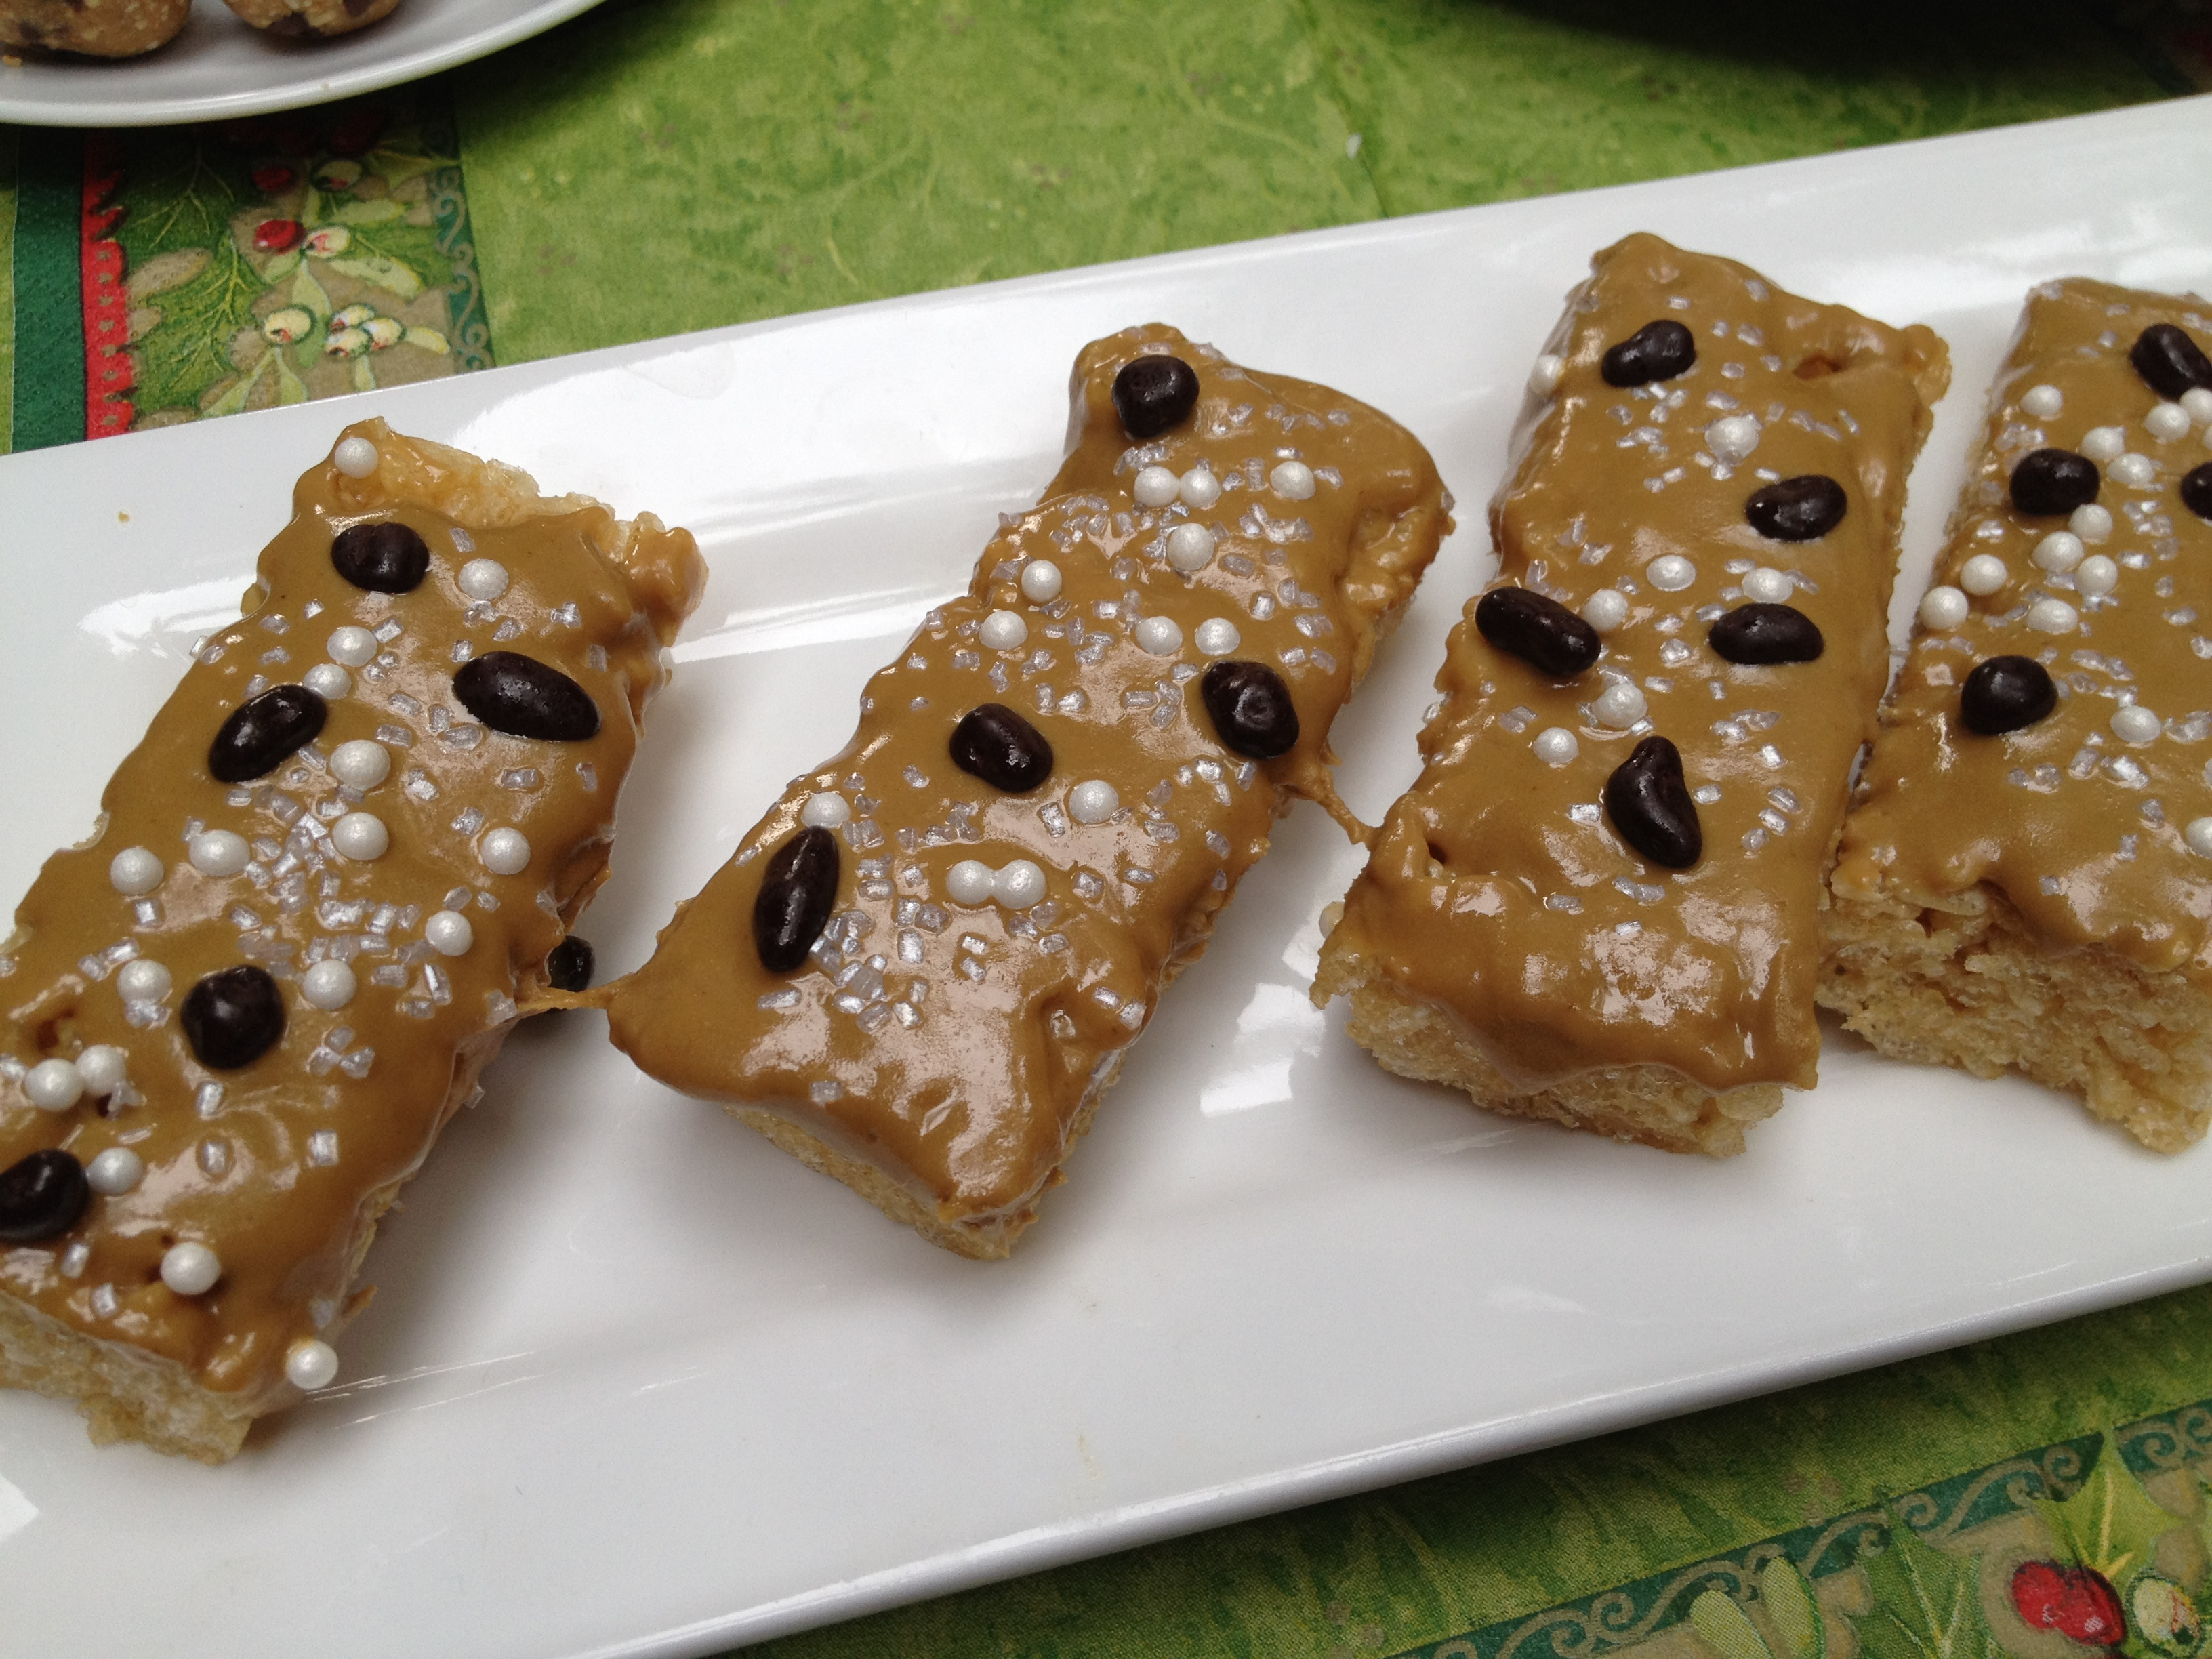 Moni Brown Rice Crispy Bars with Nut Butter Topping